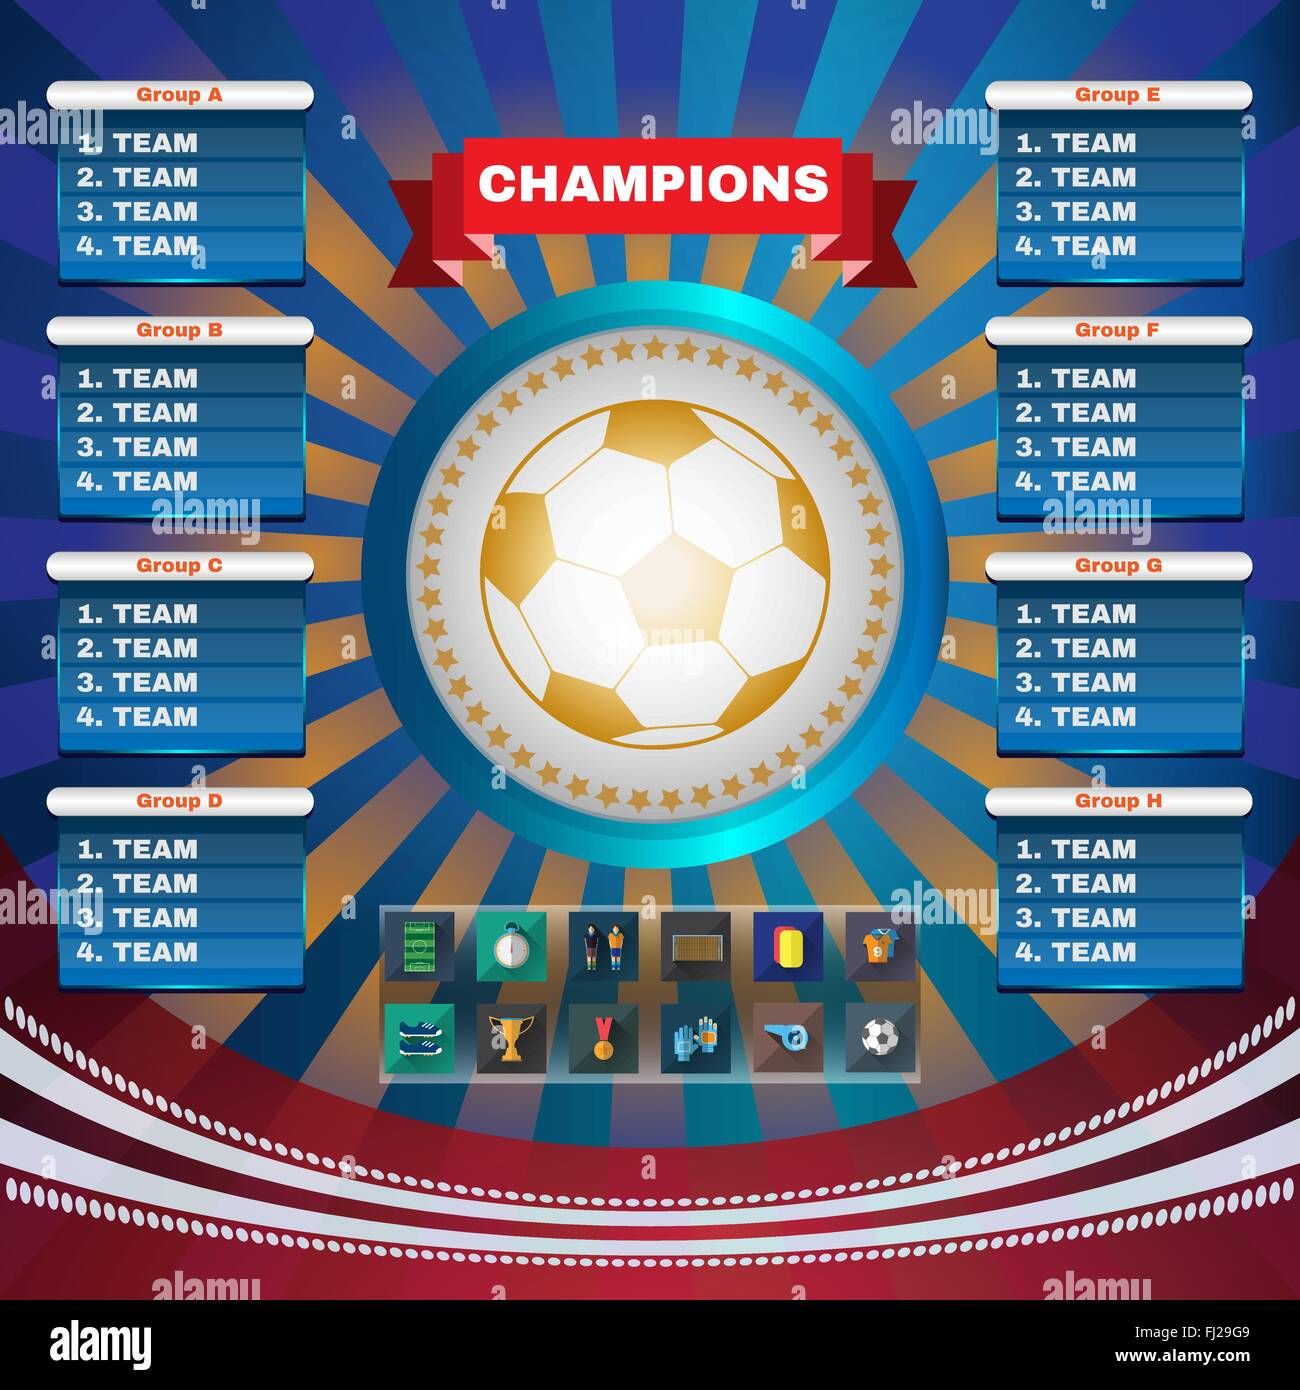 Football Champions  Flyer Soccer Groups and Teams Statistics Tables